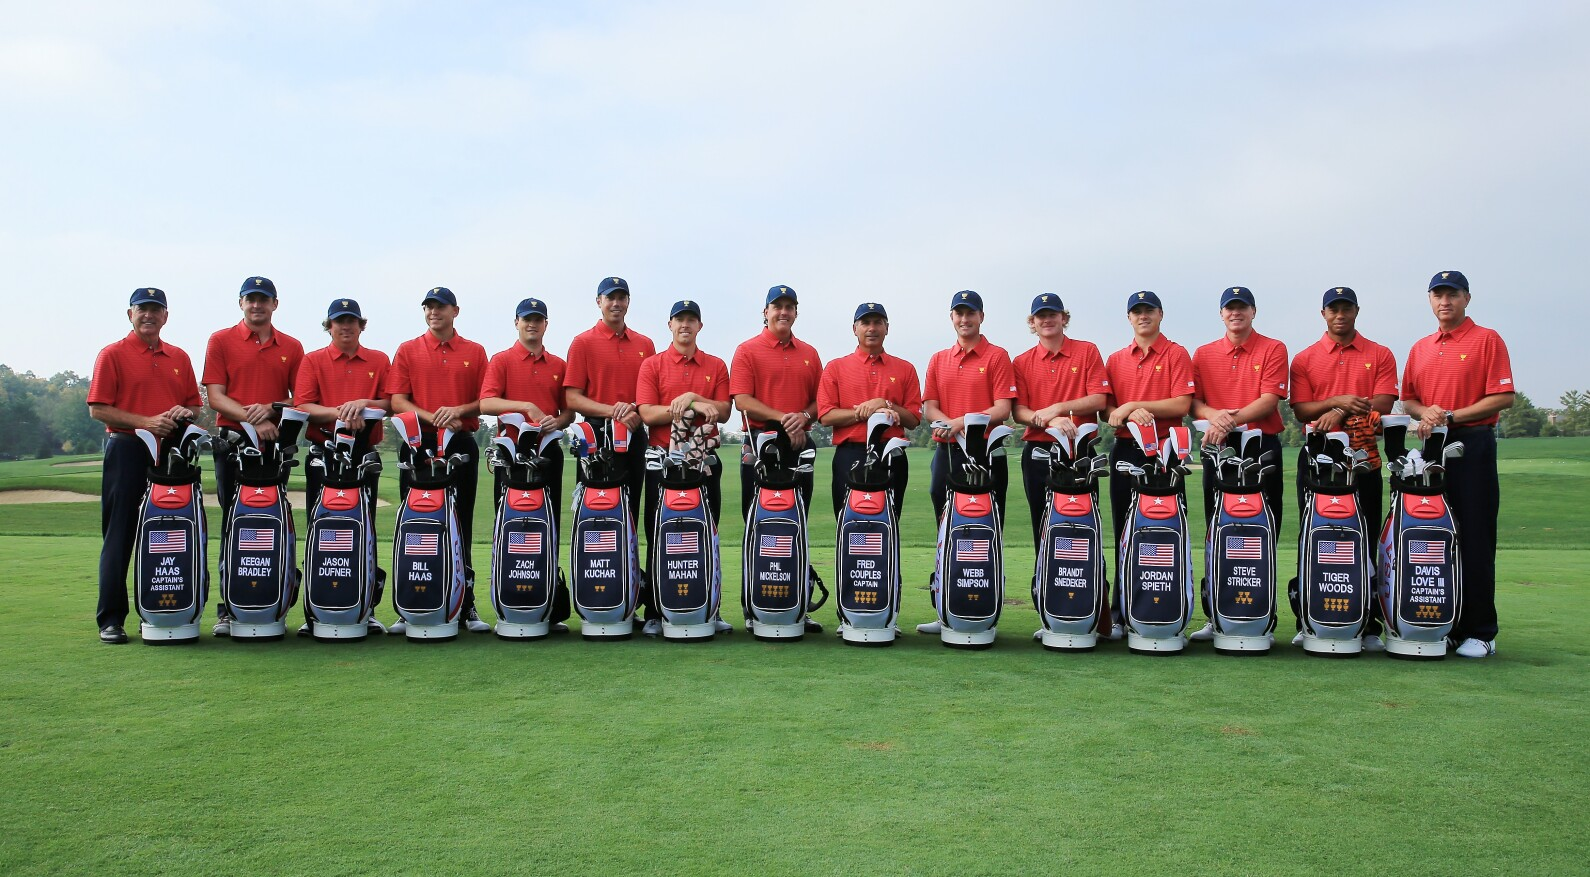 presidents cup - photo #29